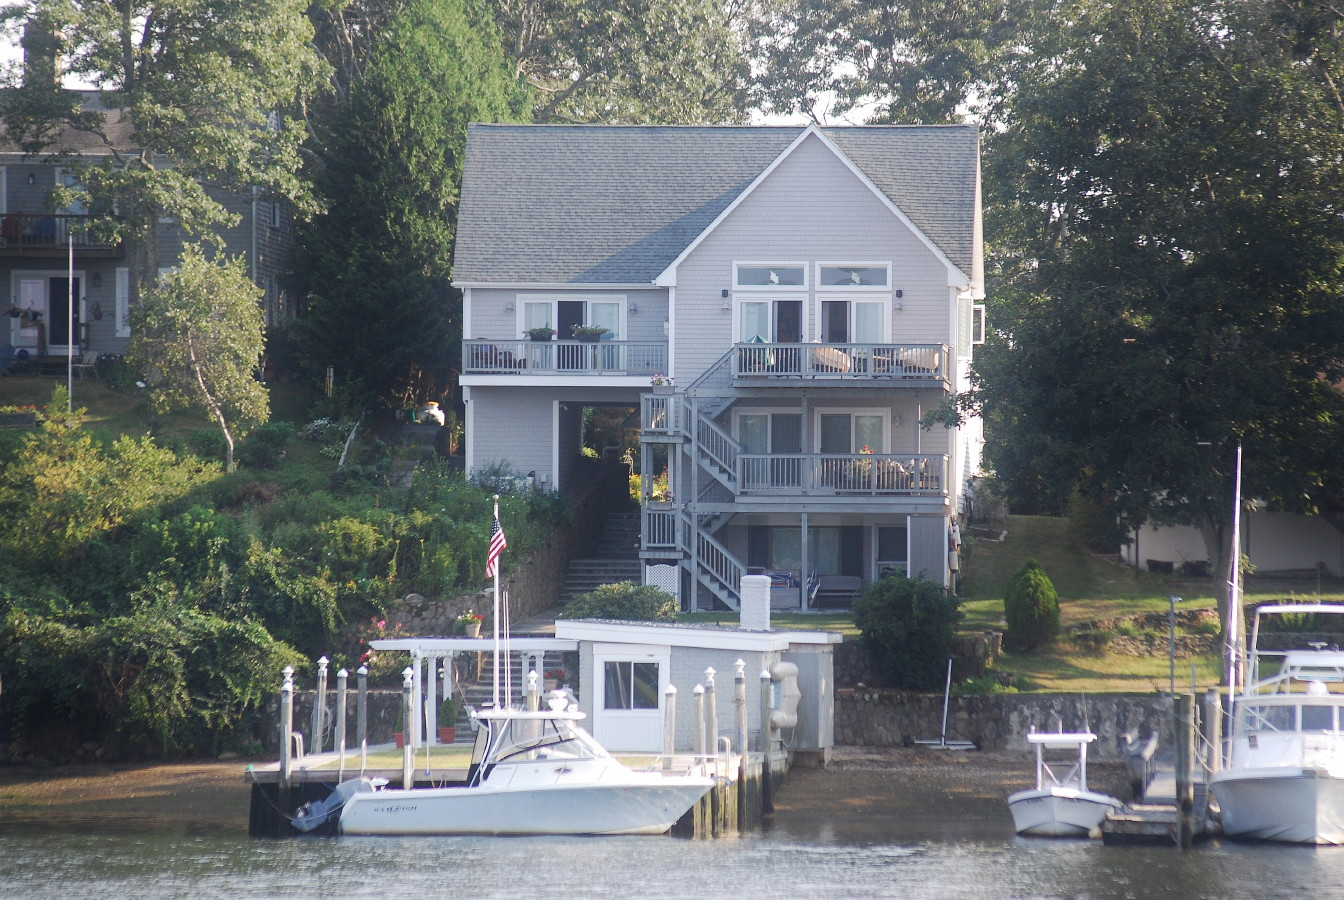 Single Family Home for Sale at Boater's Dream 15 Narrows Road Narragansett, Rhode Island 02882 United States